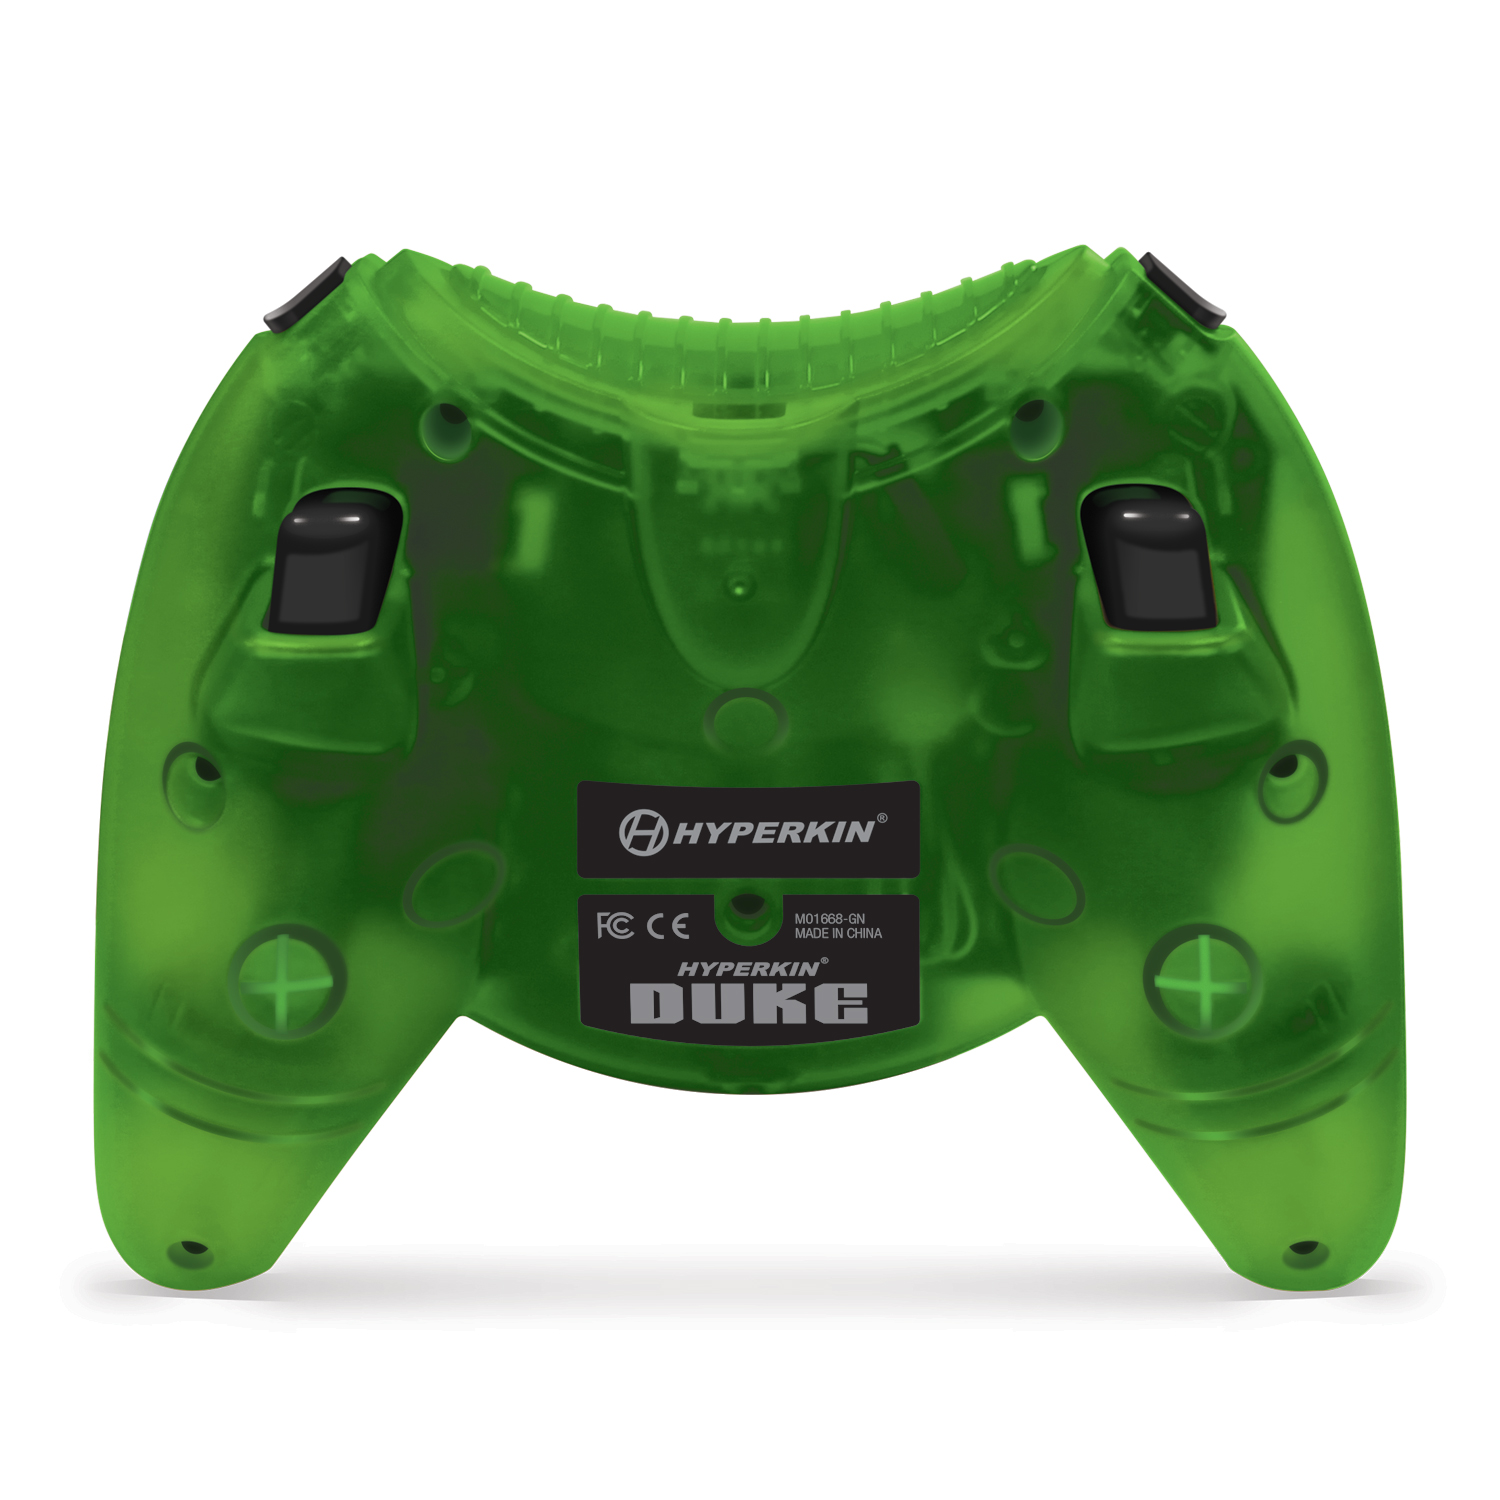 xbox-duke-controller-new-clover-green-edition-hits-the-shelves-frikigamers.com.jpg